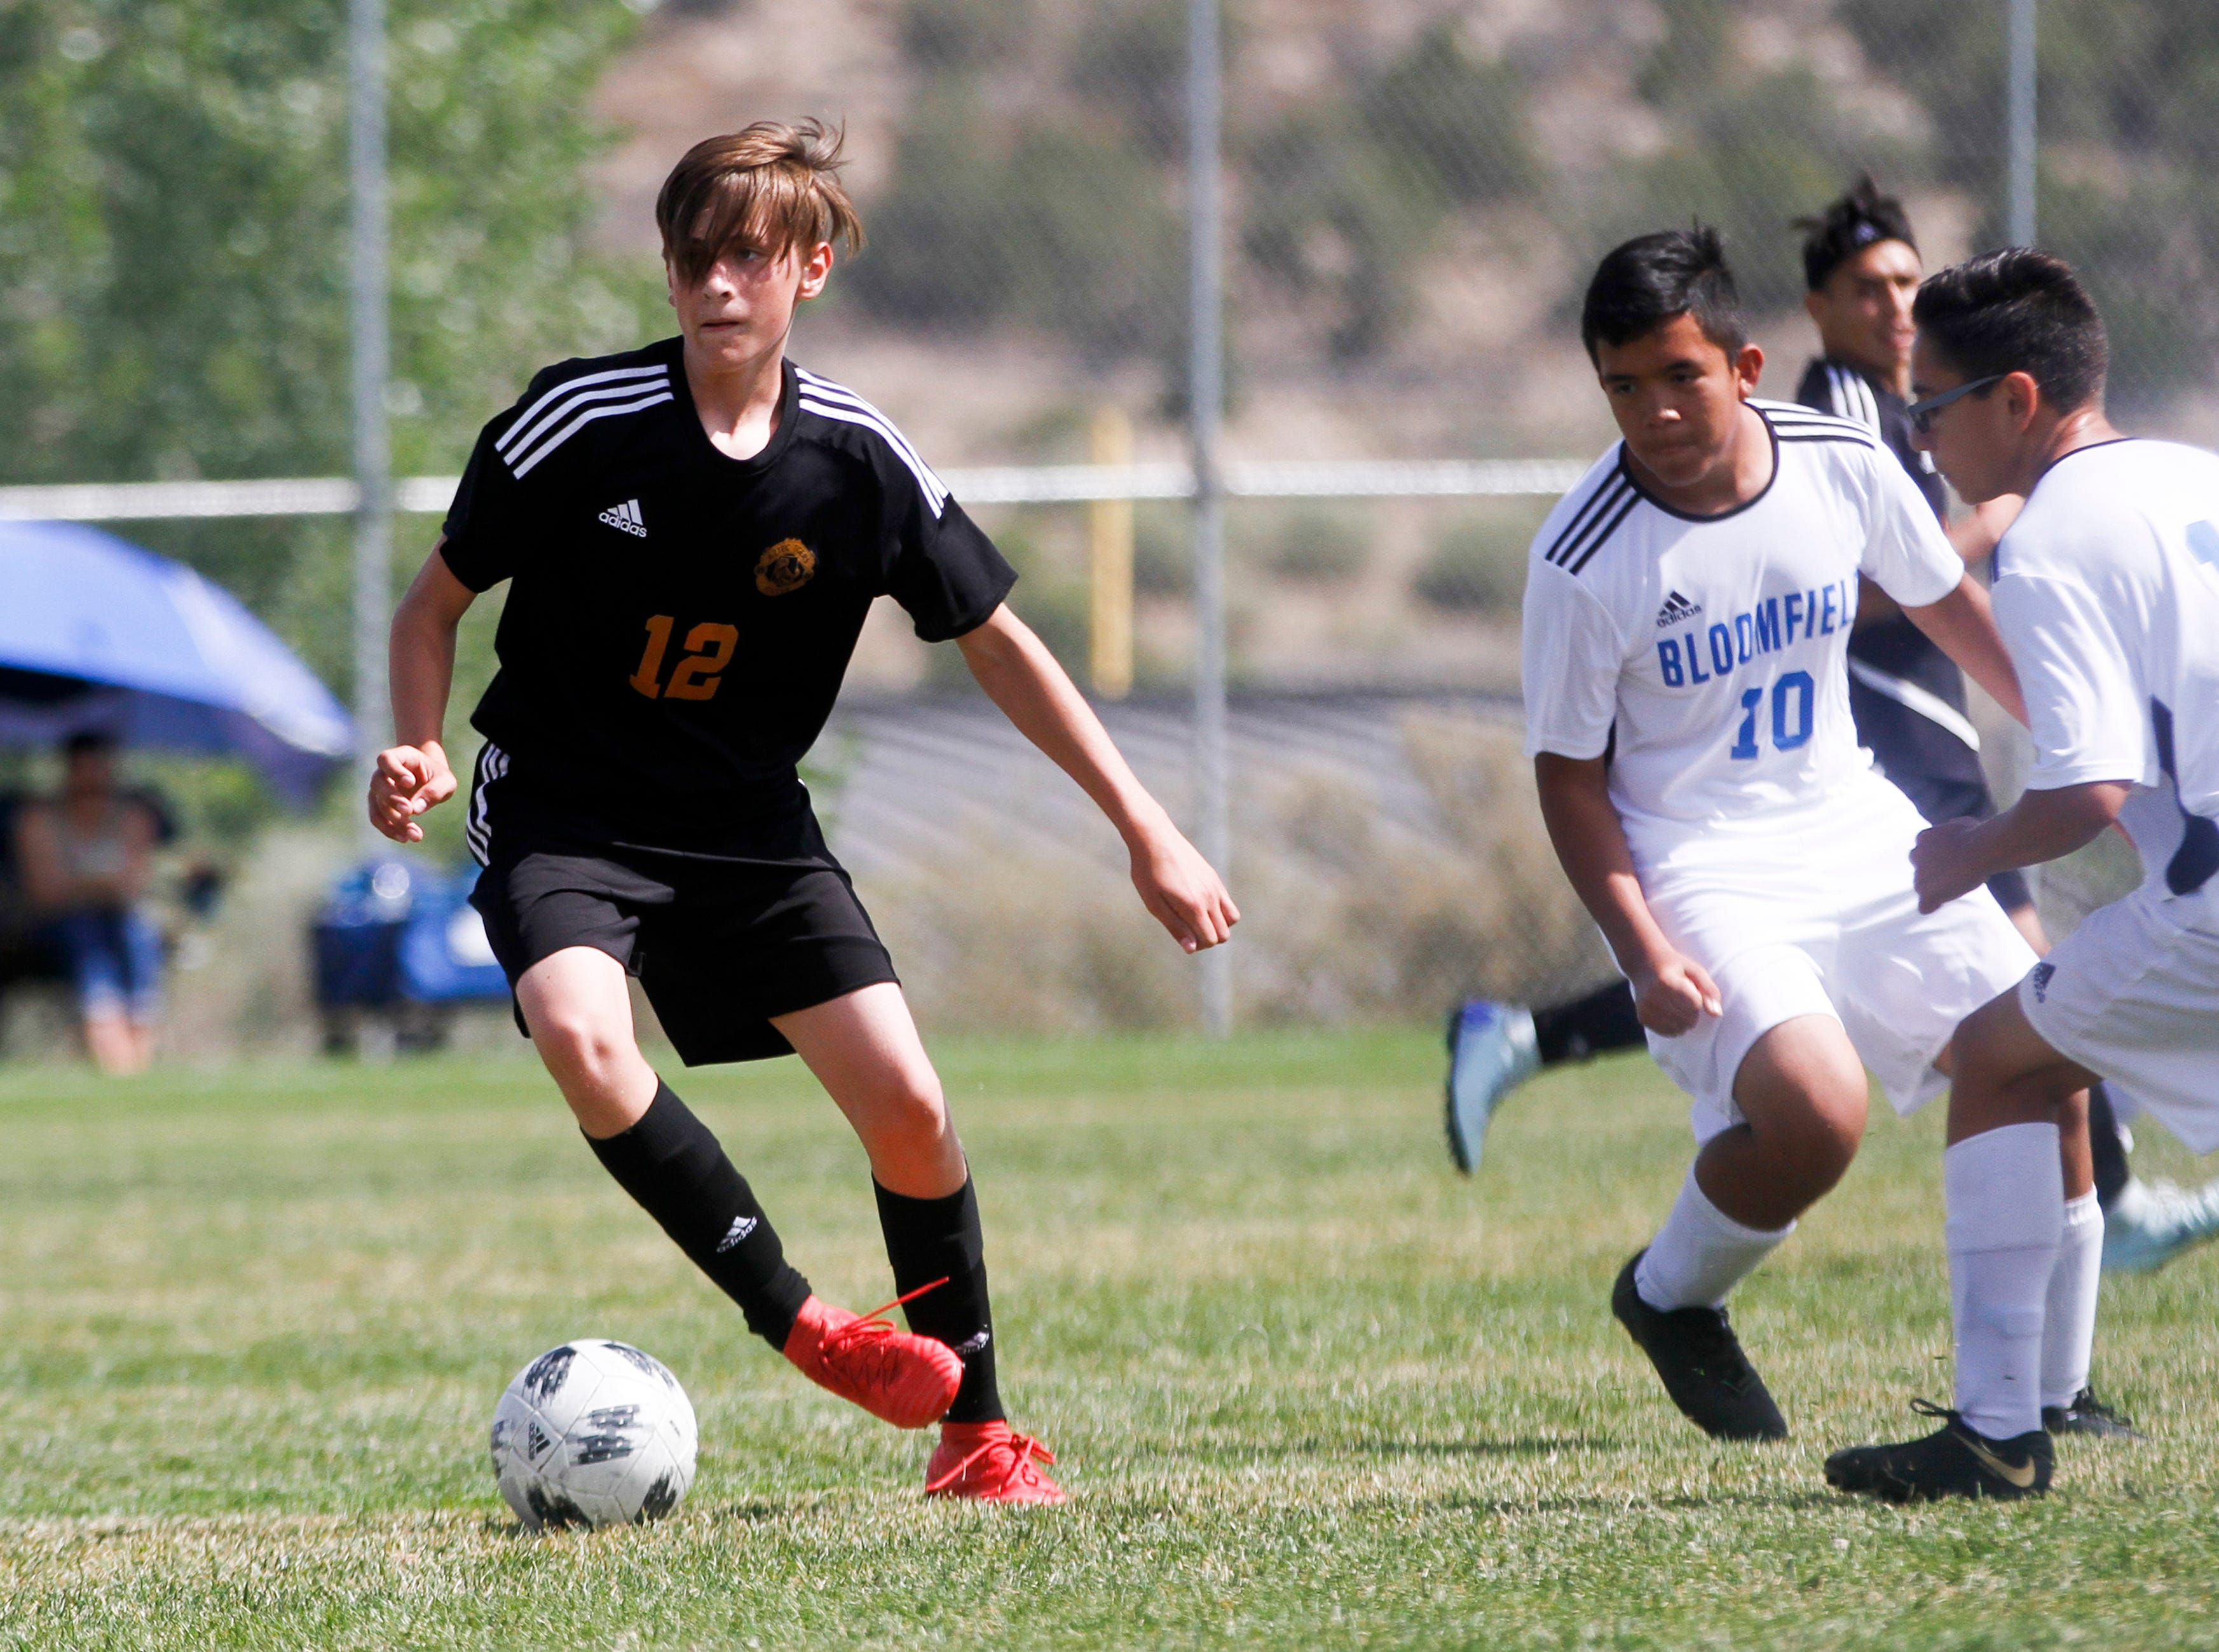 Aztec's Kolton Bruhn takes possession of the ball, Friday, Aug. 24, 2018 at the Aztec Tiger Soccer Complex.